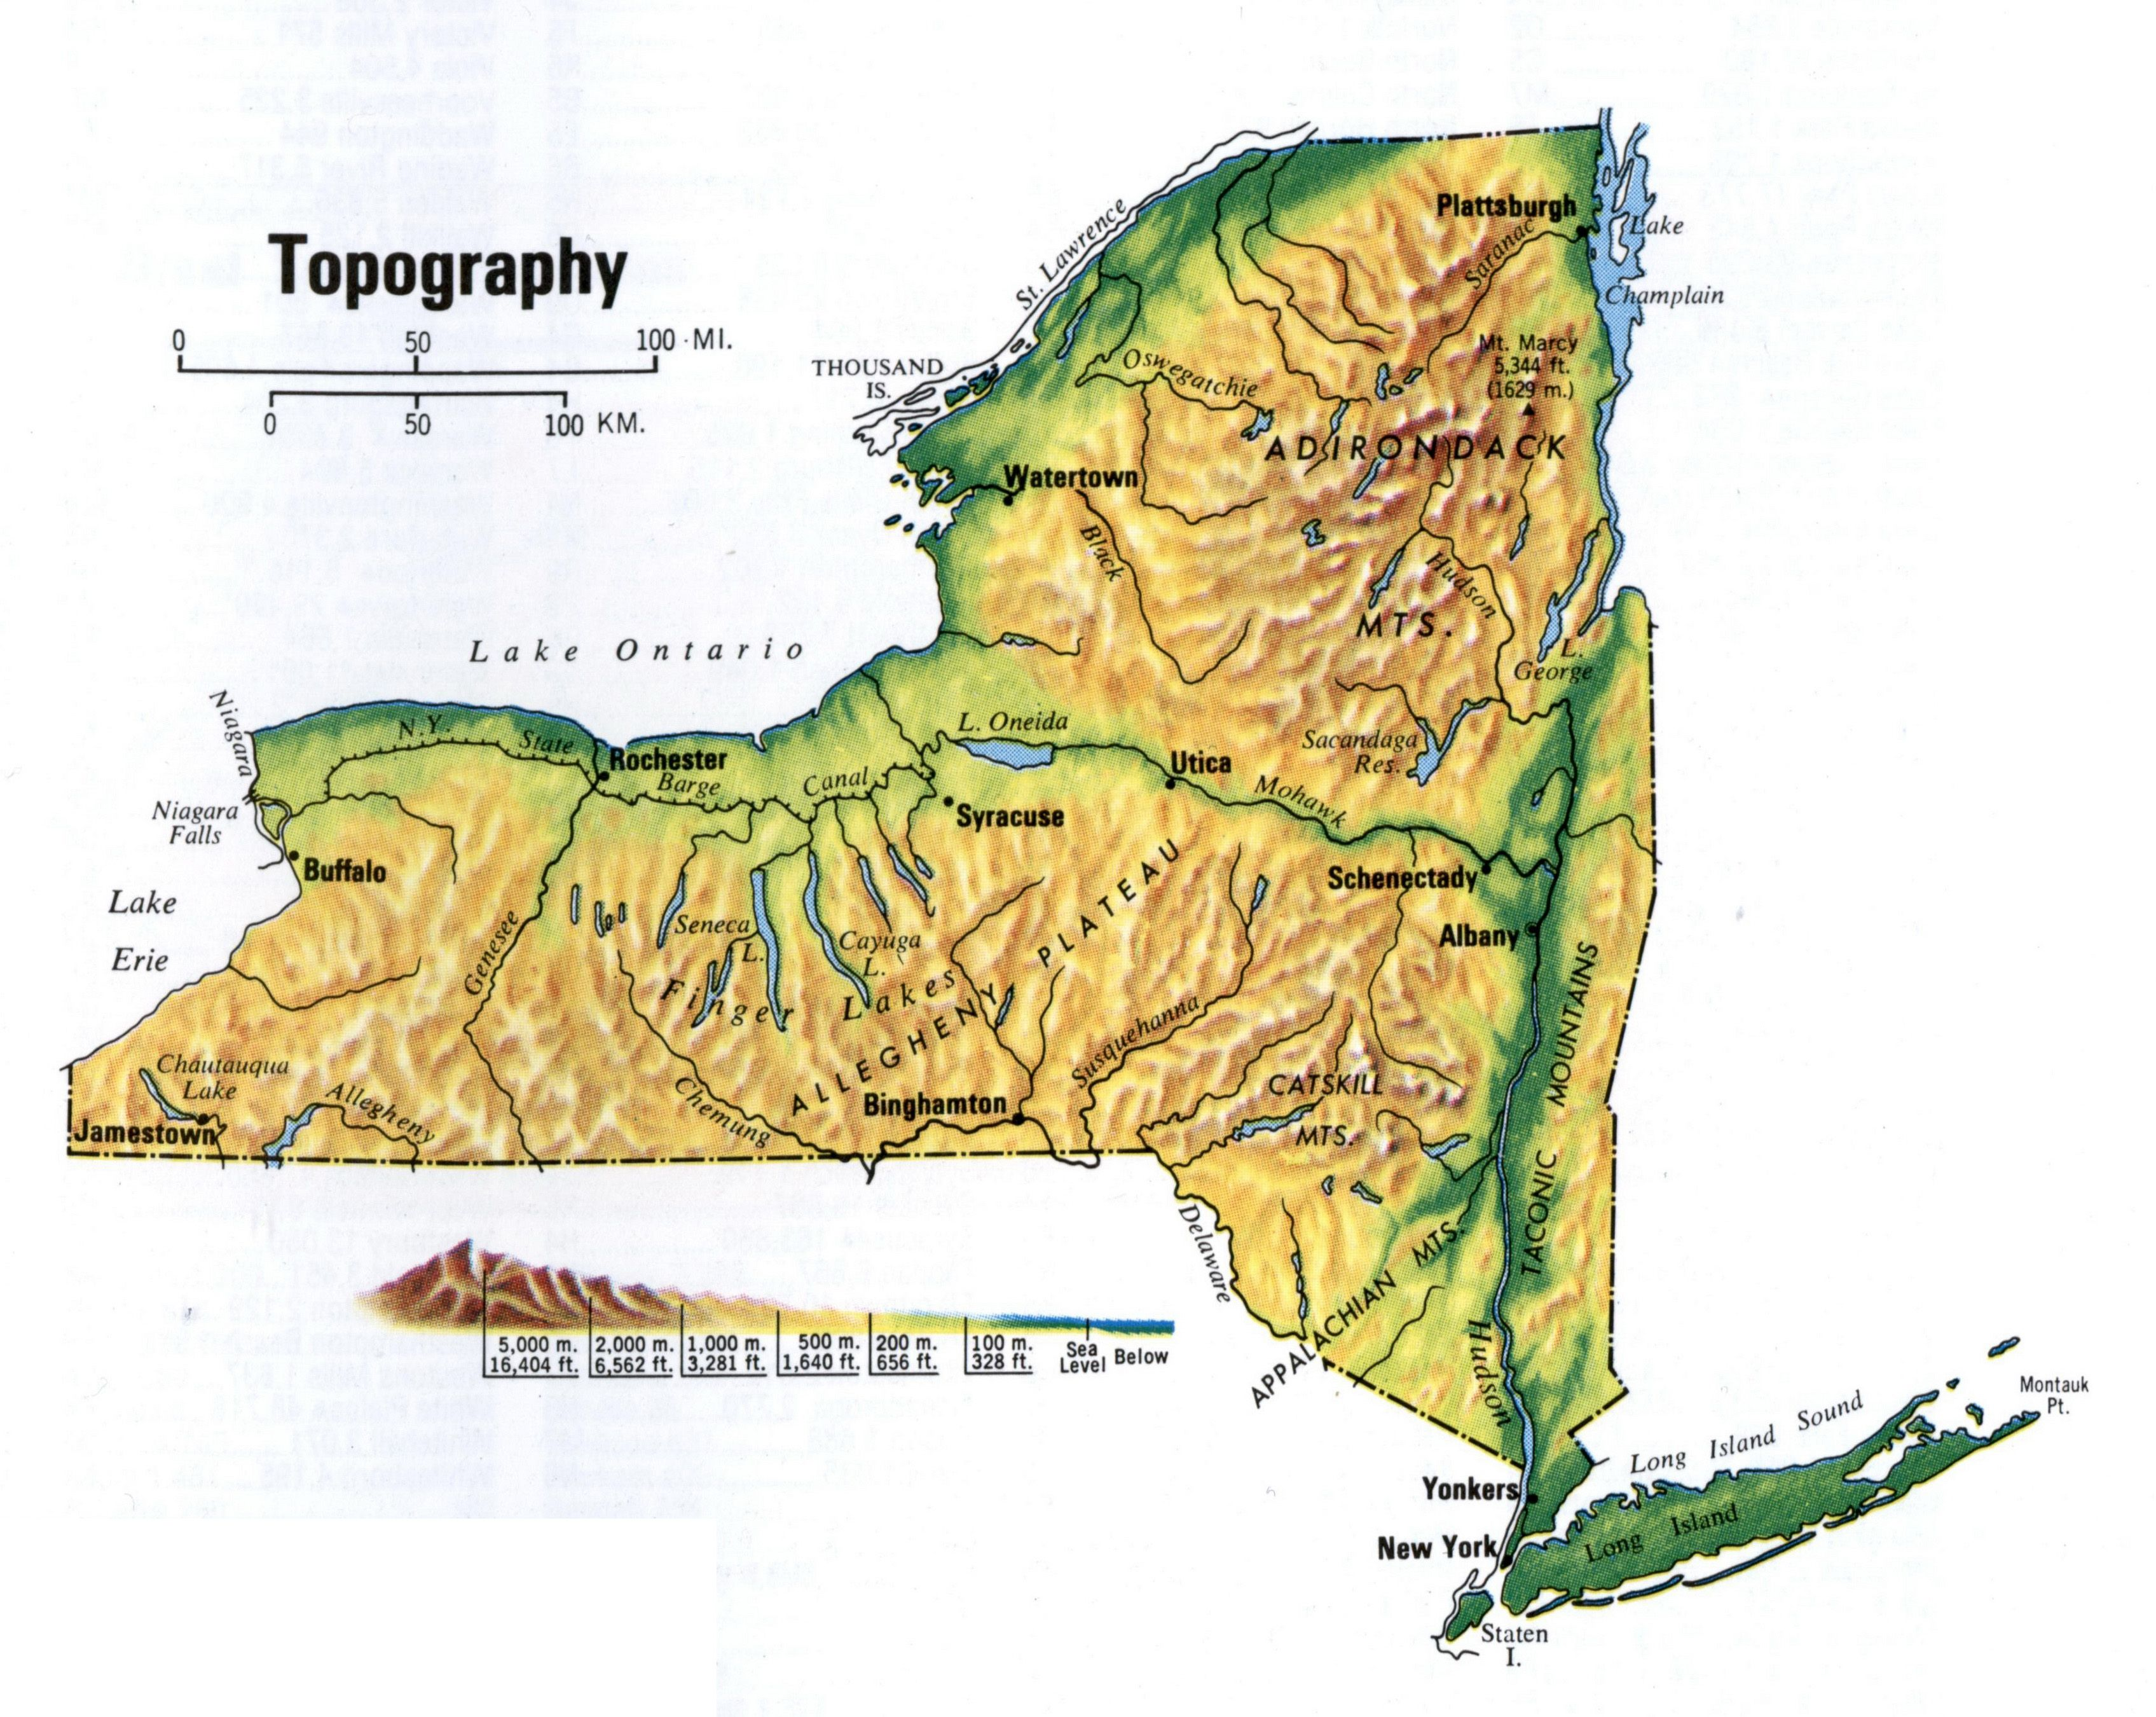 Topographic Map Of New England.Image Result For Topographical Map Of New York State New England